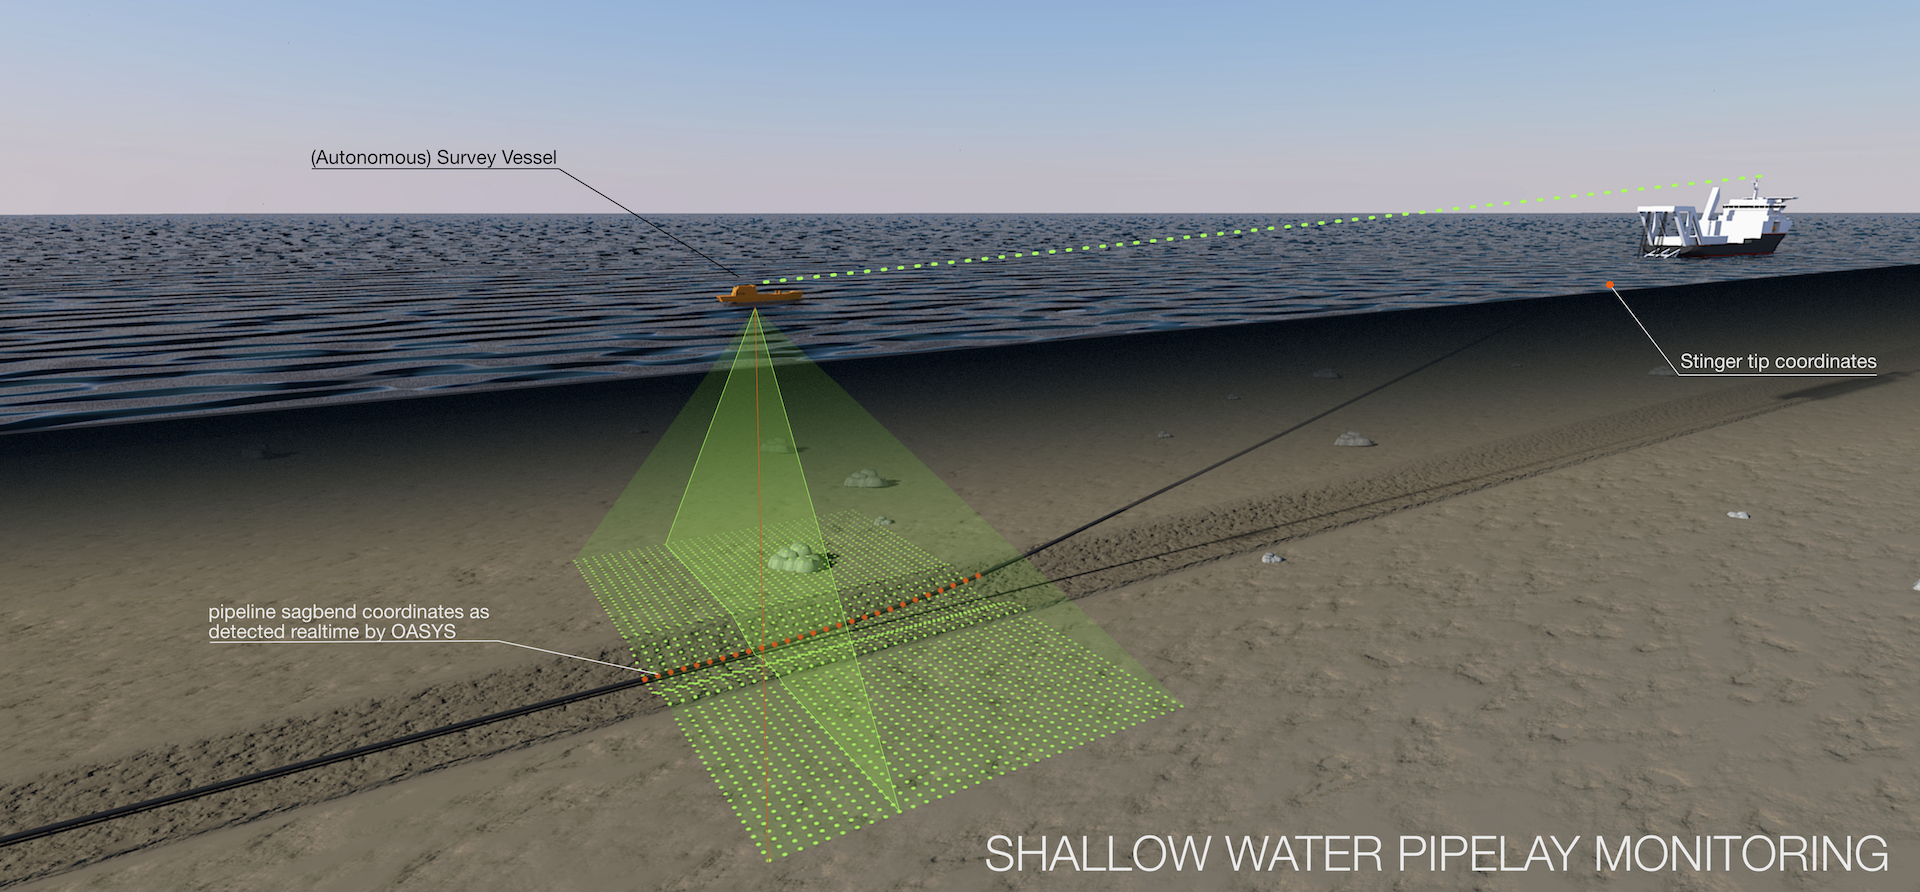 Shallow water pipe lay monitoring directly from an ASV